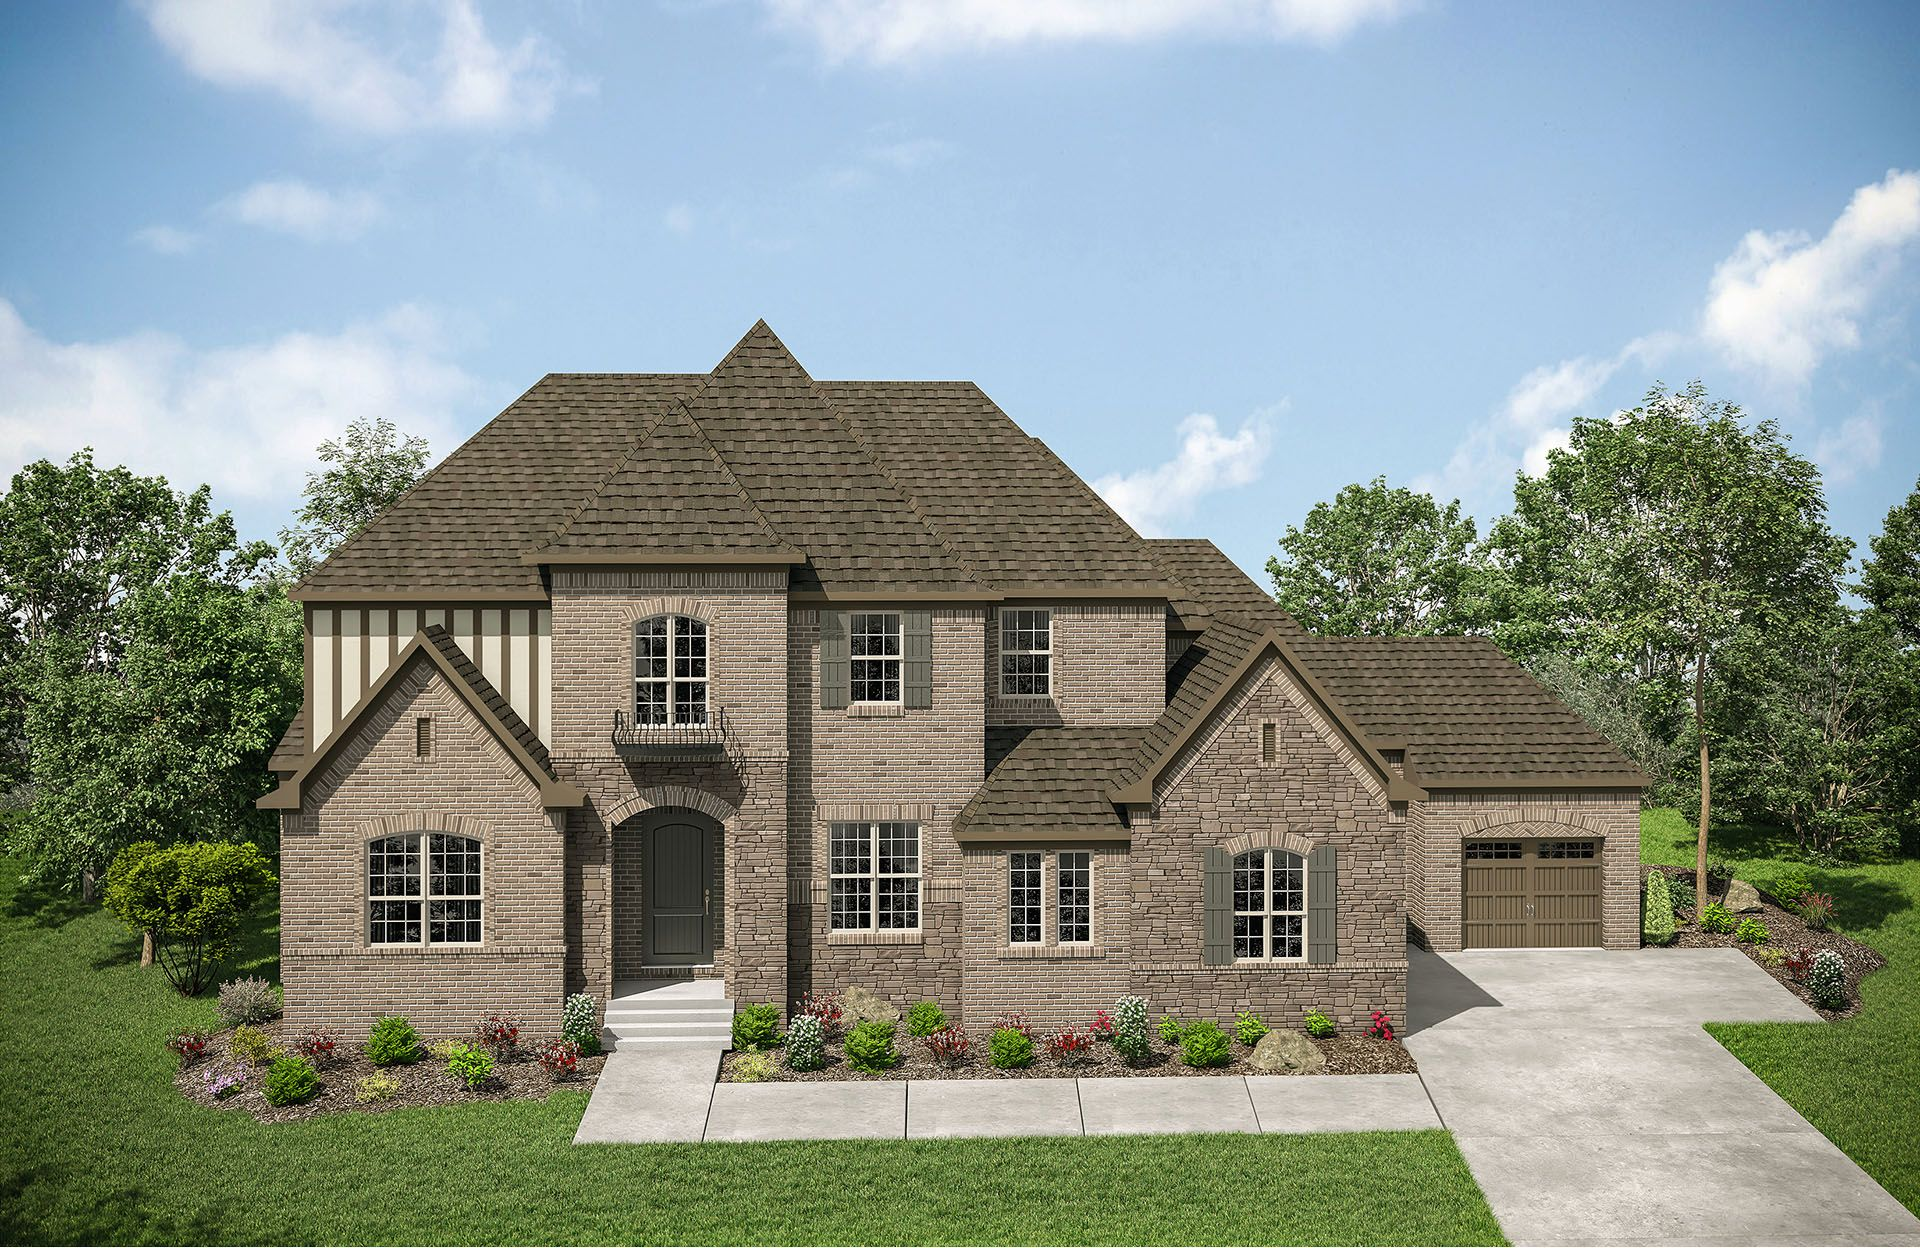 Single Family for Active at Traditions - Colinas Ii Carnival Drive Brentwood, Tennessee 37027 United States